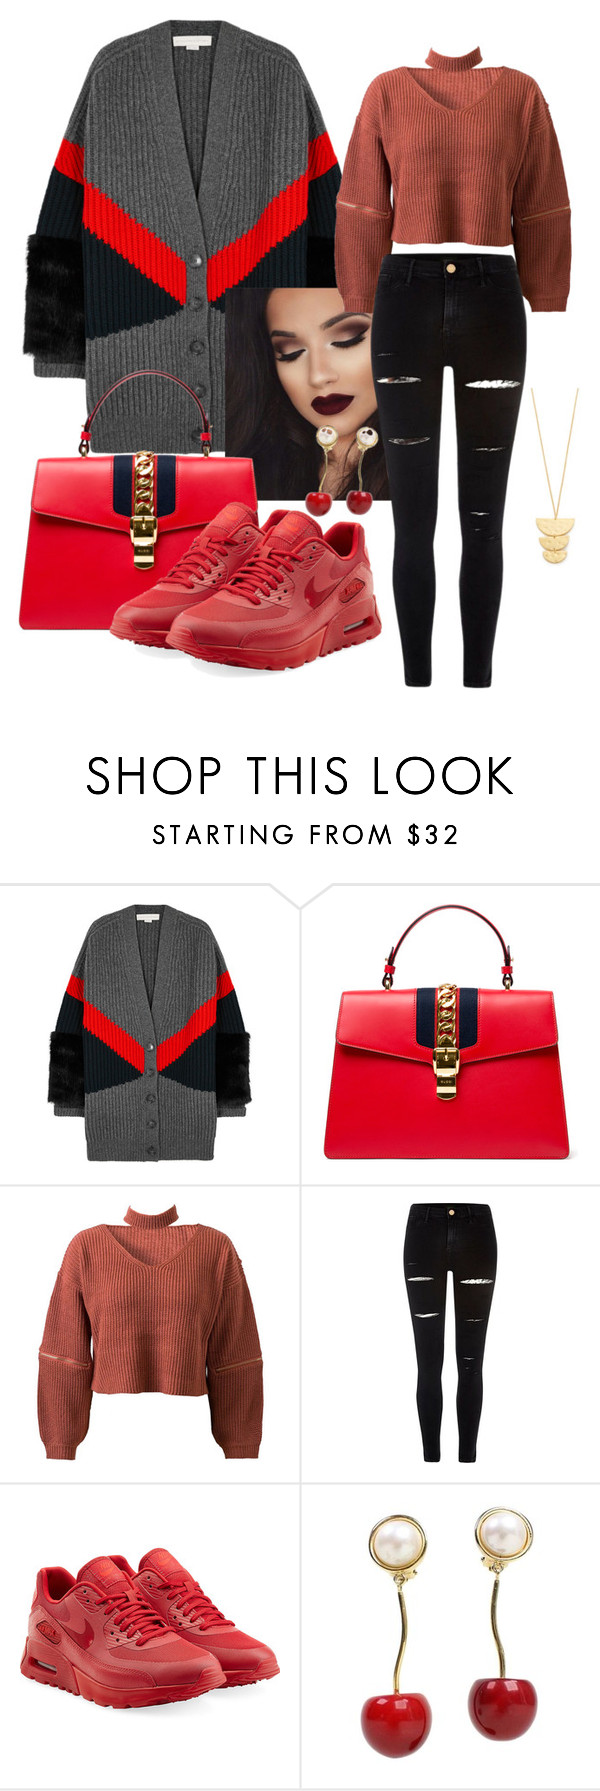 """""""Miss Boss"""" by missboss146 ❤ liked on Polyvore featuring STELLA McCARTNEY, Gucci, WithChic, River Island, NIKE, Valentino and Gorjana"""